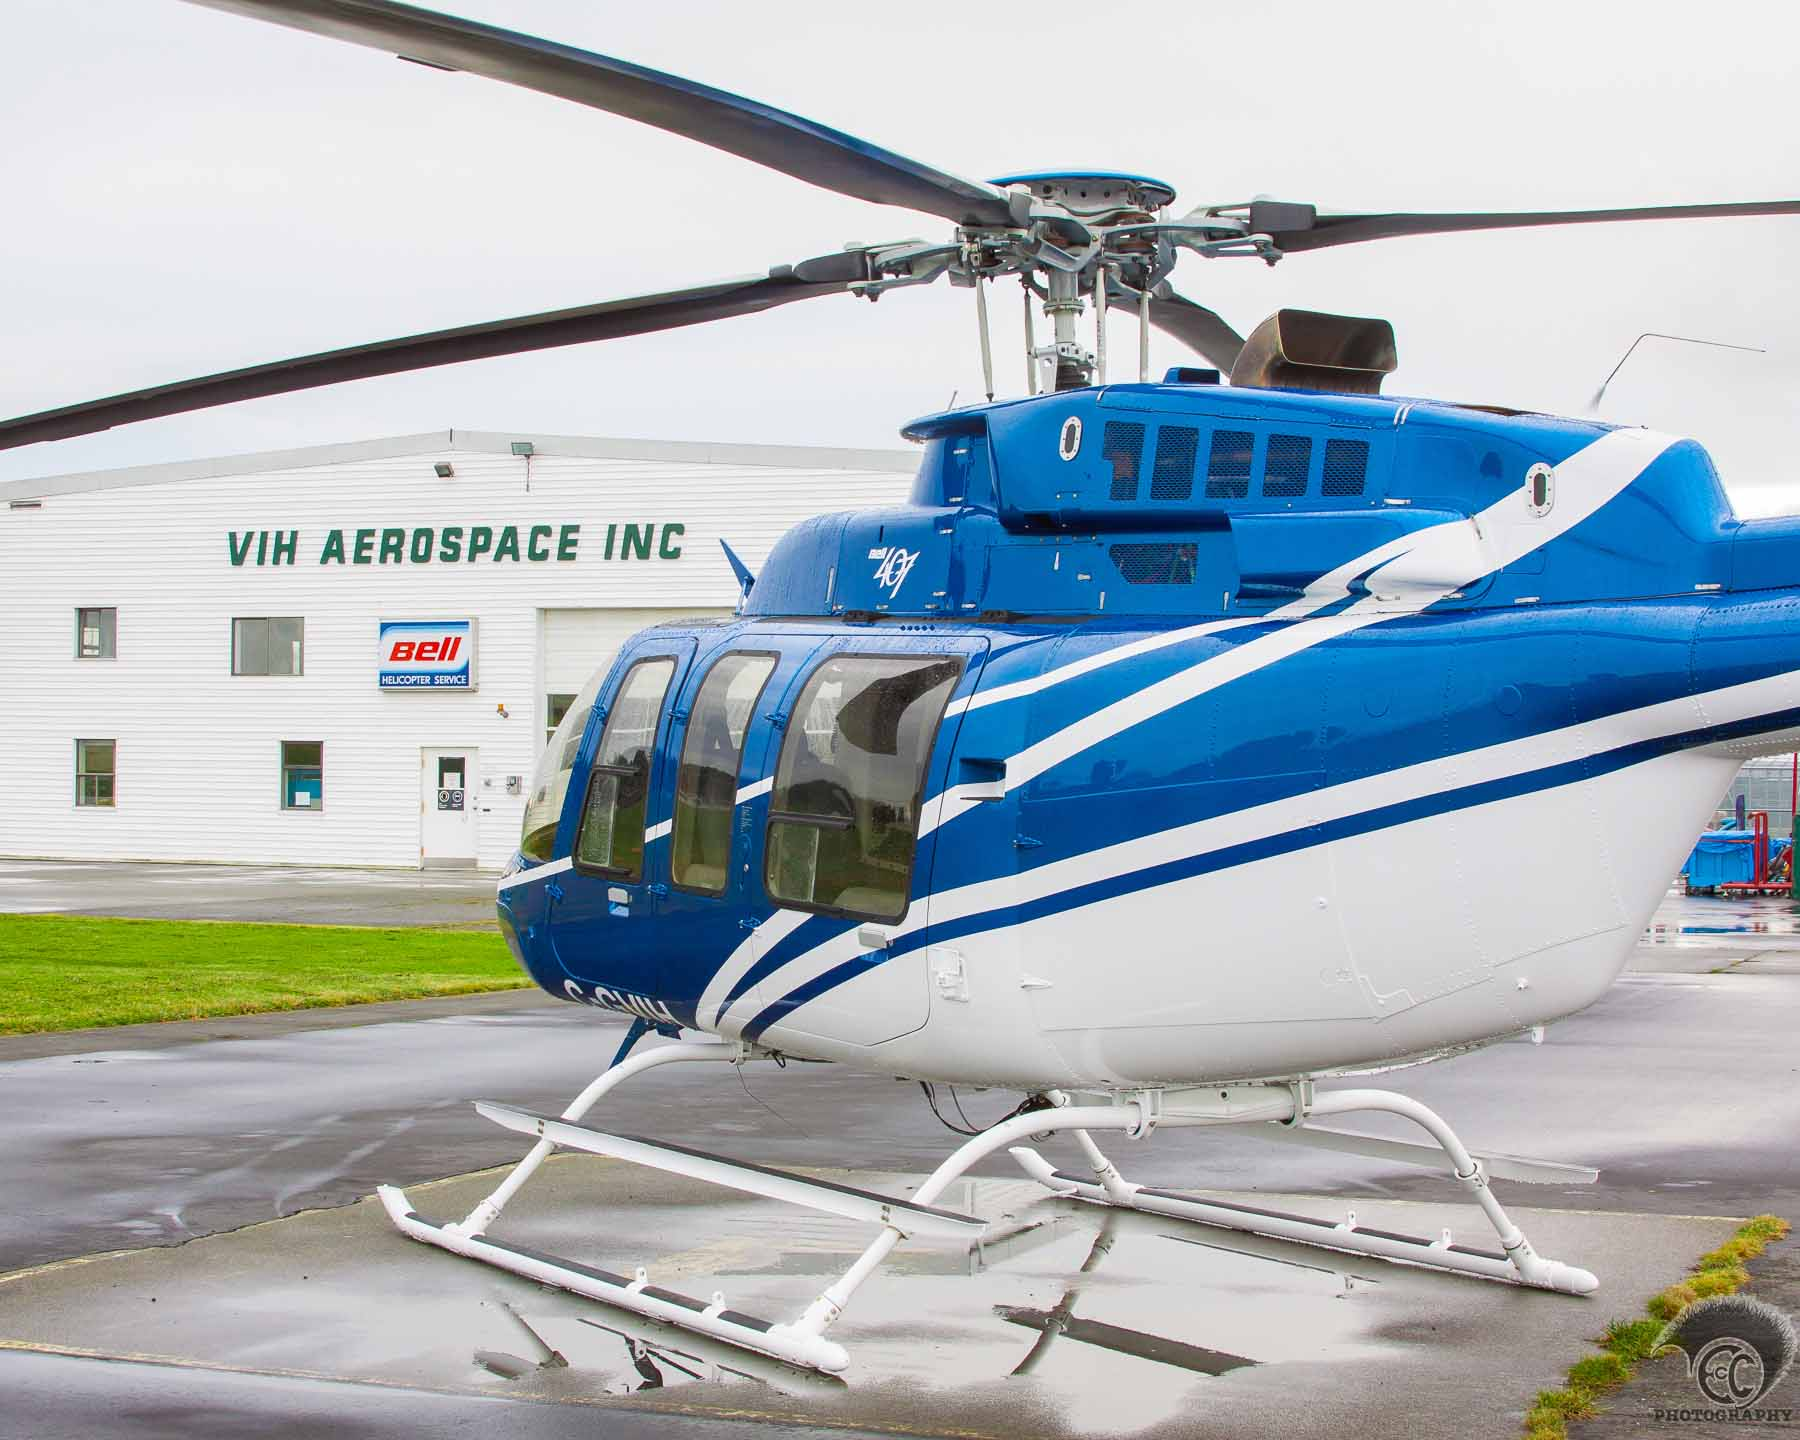 Bell 407 at VIH Aerospace